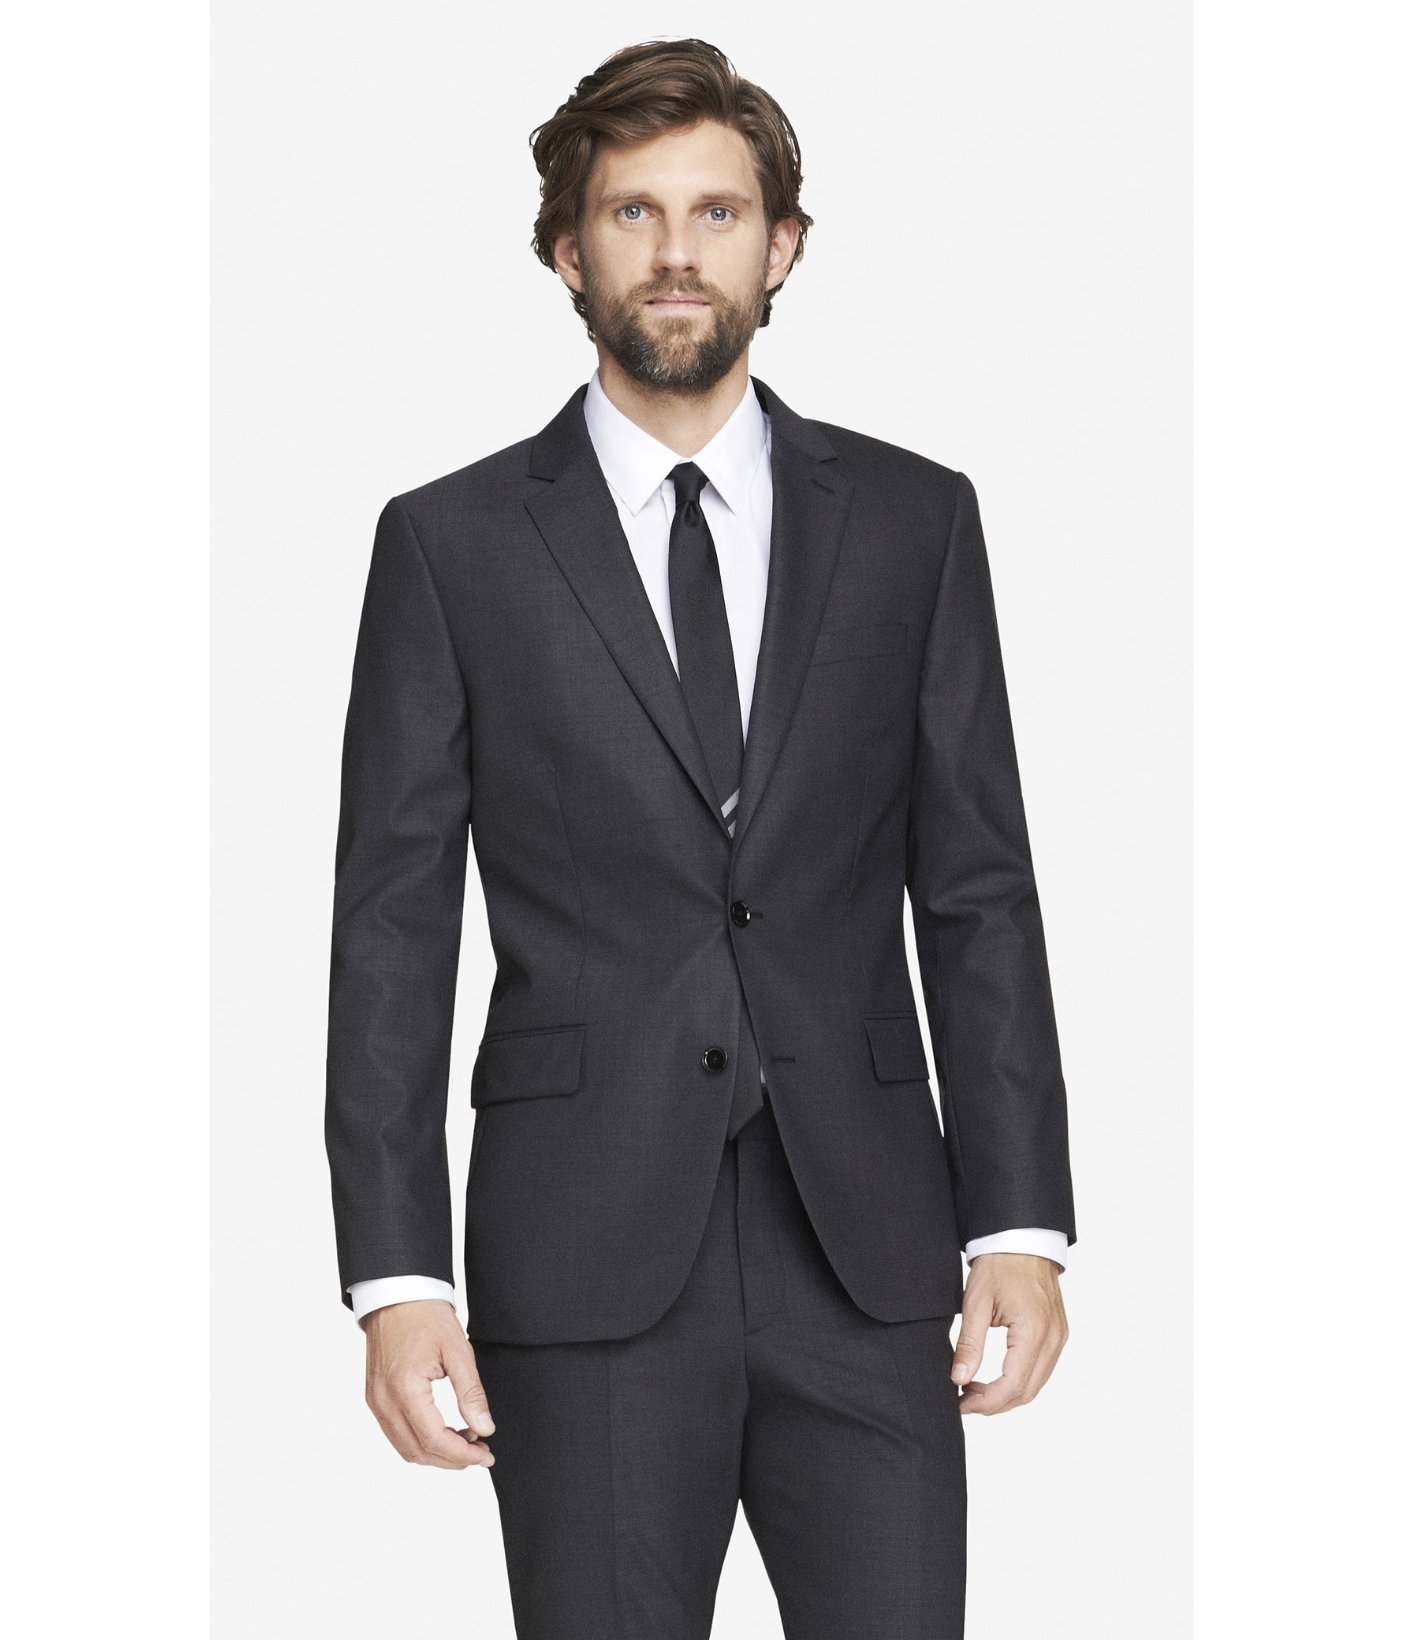 Express Wool Modern Producer End-on-end Gray Suit Jacket for Men